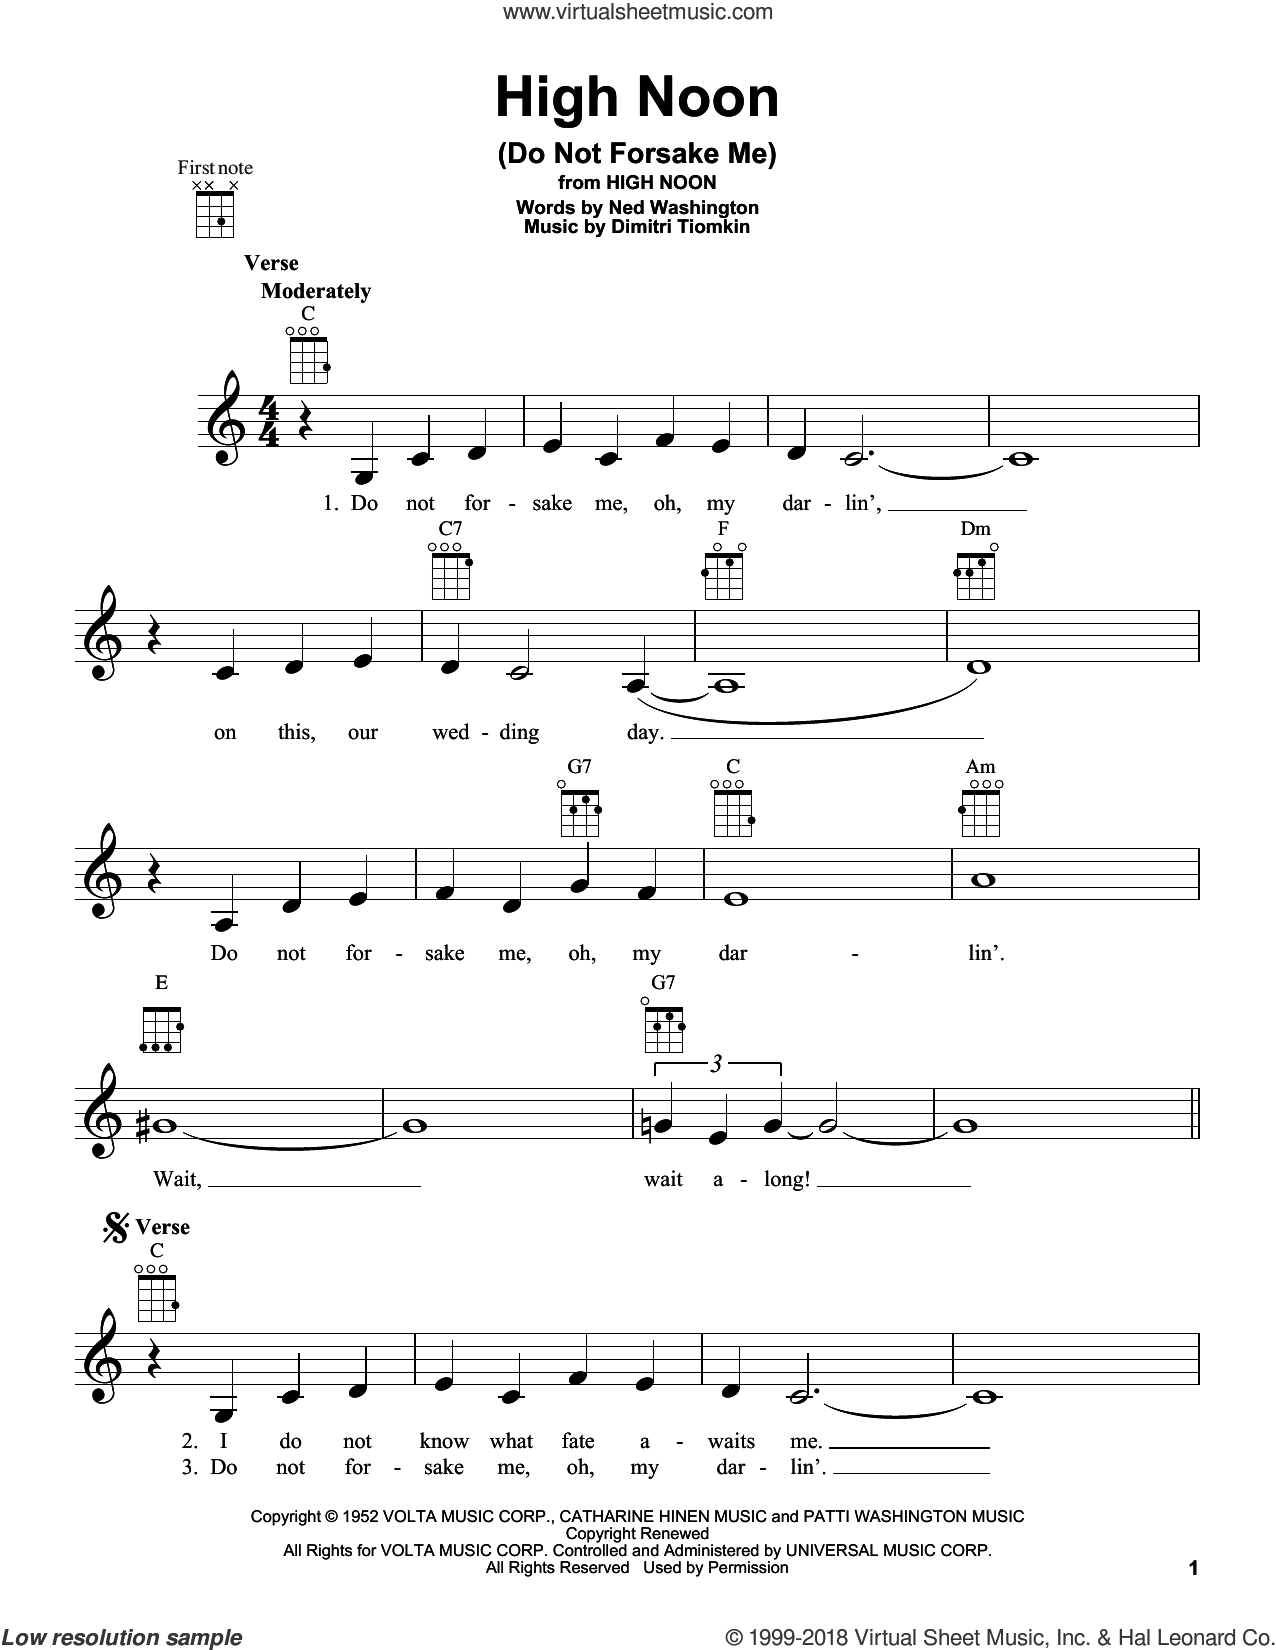 High Noon (Do Not Forsake Me) sheet music for ukulele by Ned Washington and Dimitri Tiomkin. Score Image Preview.